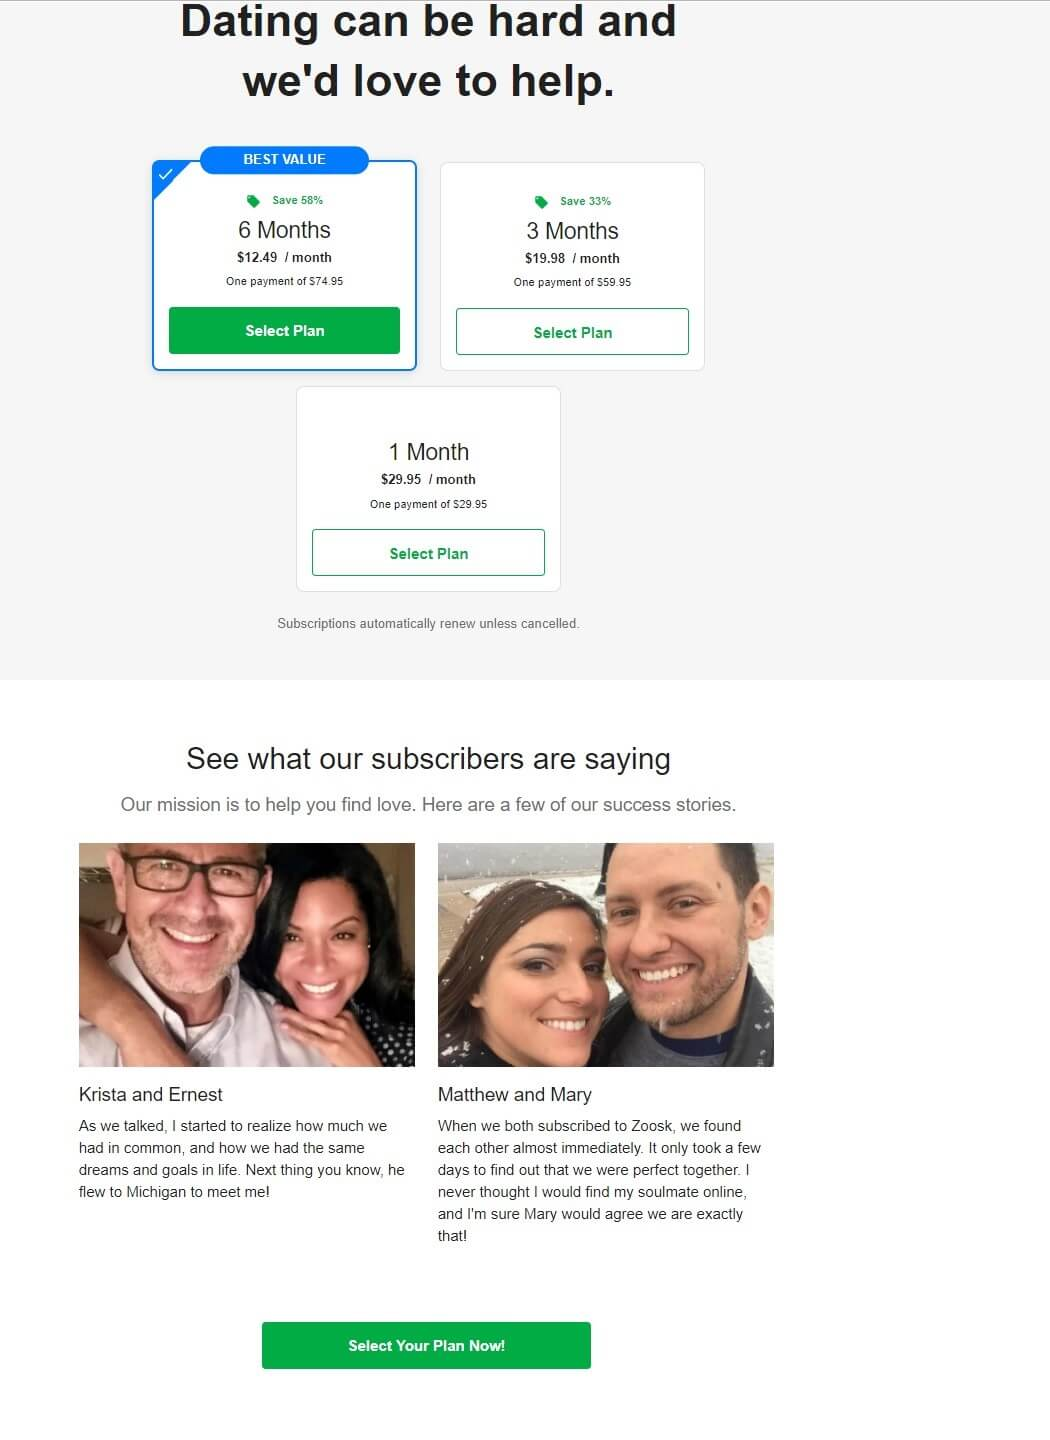 Zoosk review of discount membership plans